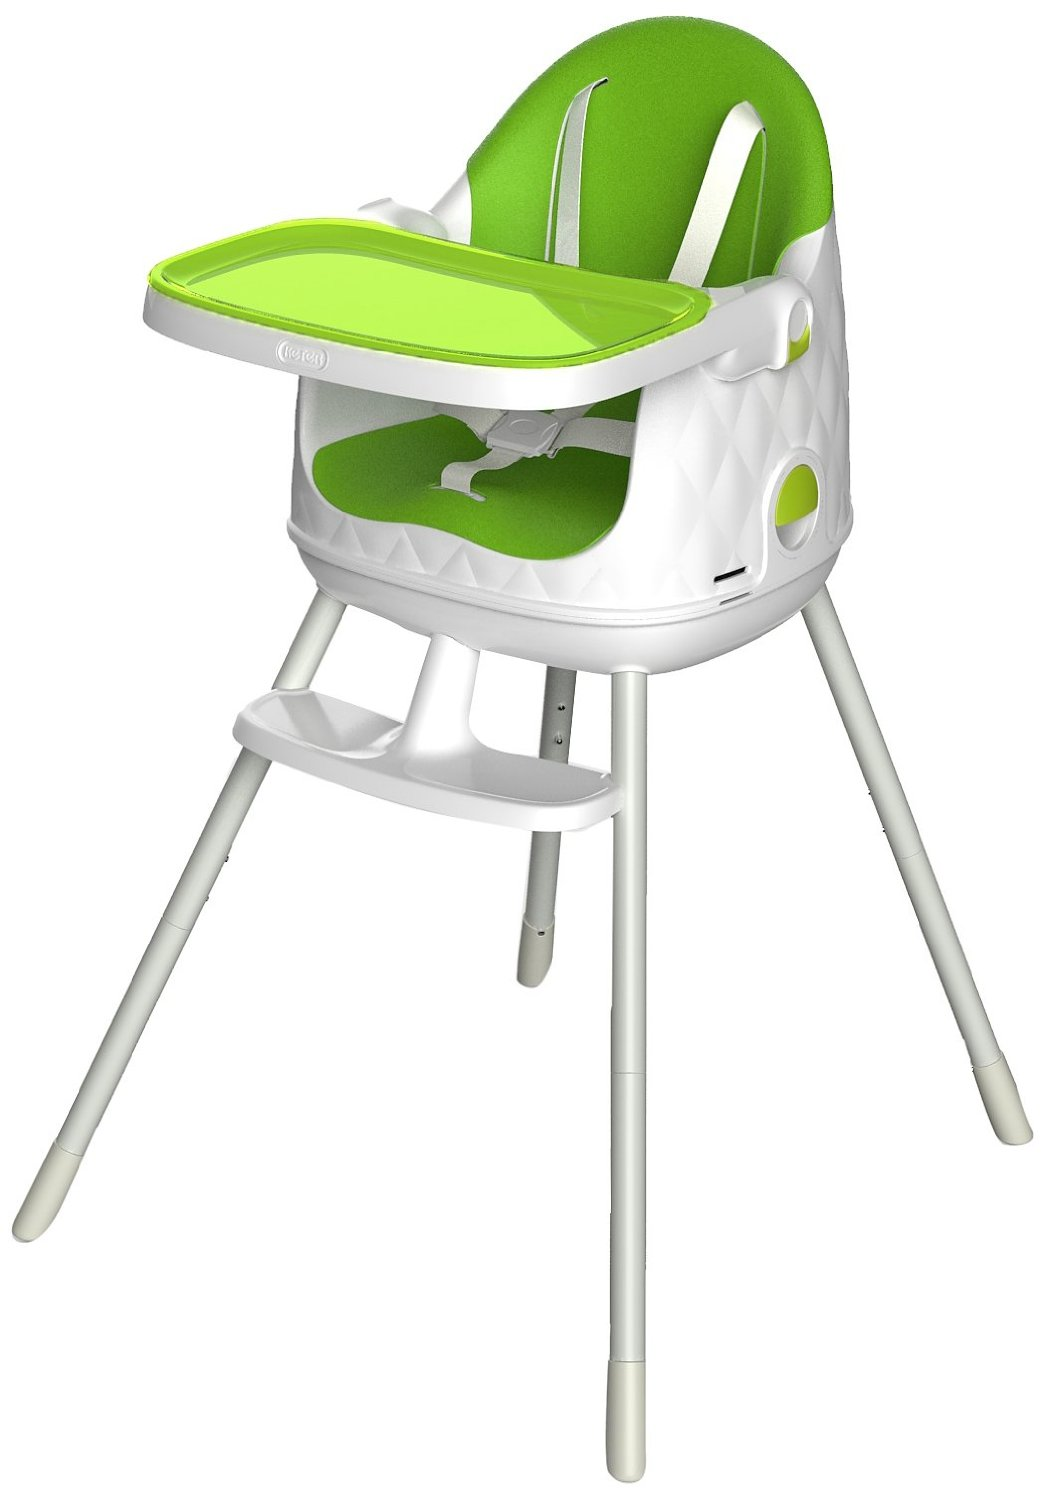 Remarkable Keter Multi Dine Highchair Green Walmart Com Pabps2019 Chair Design Images Pabps2019Com